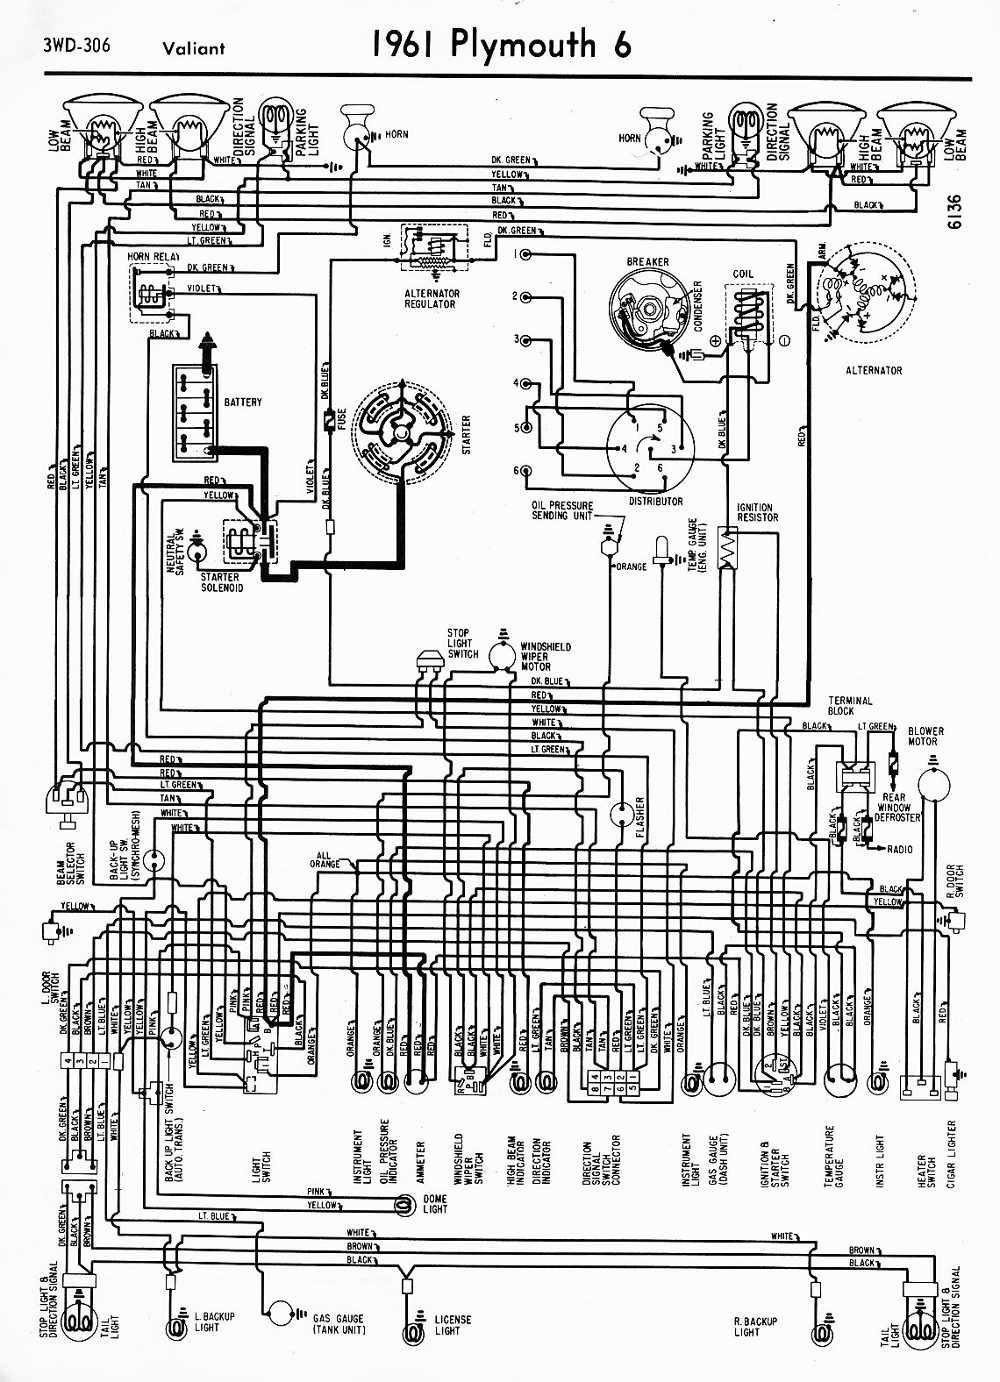 1966 Plymouth Wiring Diagram - Wiring Diagrams Load on